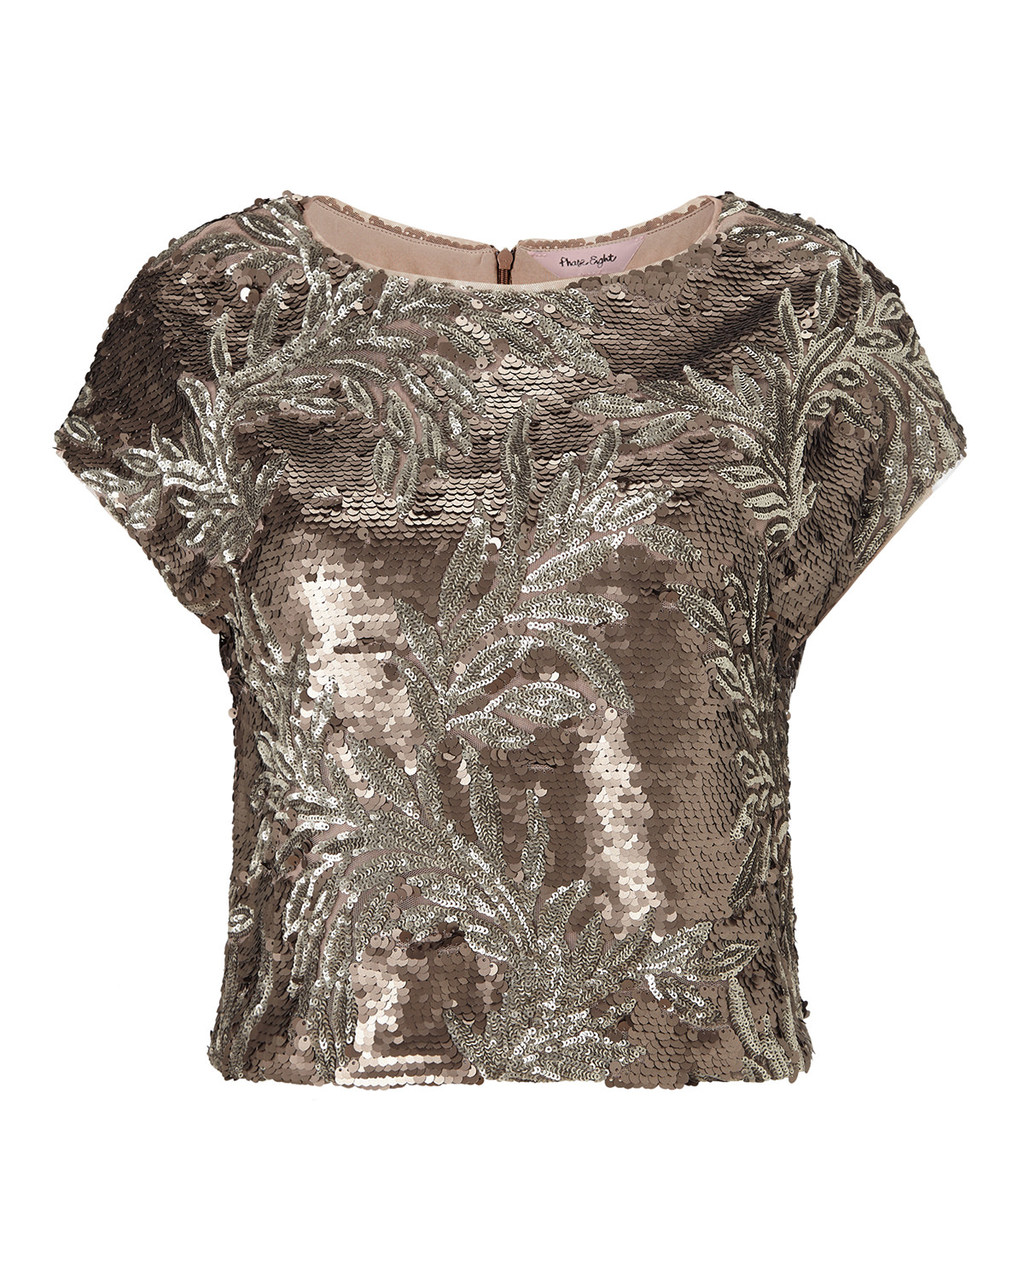 Nasia Sequin Top - neckline: round neck; length: cropped; predominant colour: silver; occasions: evening, occasion; style: top; fibres: polyester/polyamide - 100%; fit: straight cut; sleeve length: short sleeve; sleeve style: standard; texture group: ornate wovens; pattern type: fabric; pattern size: light/subtle; pattern: patterned/print; embellishment: sequins; season: a/w 2015; wardrobe: event